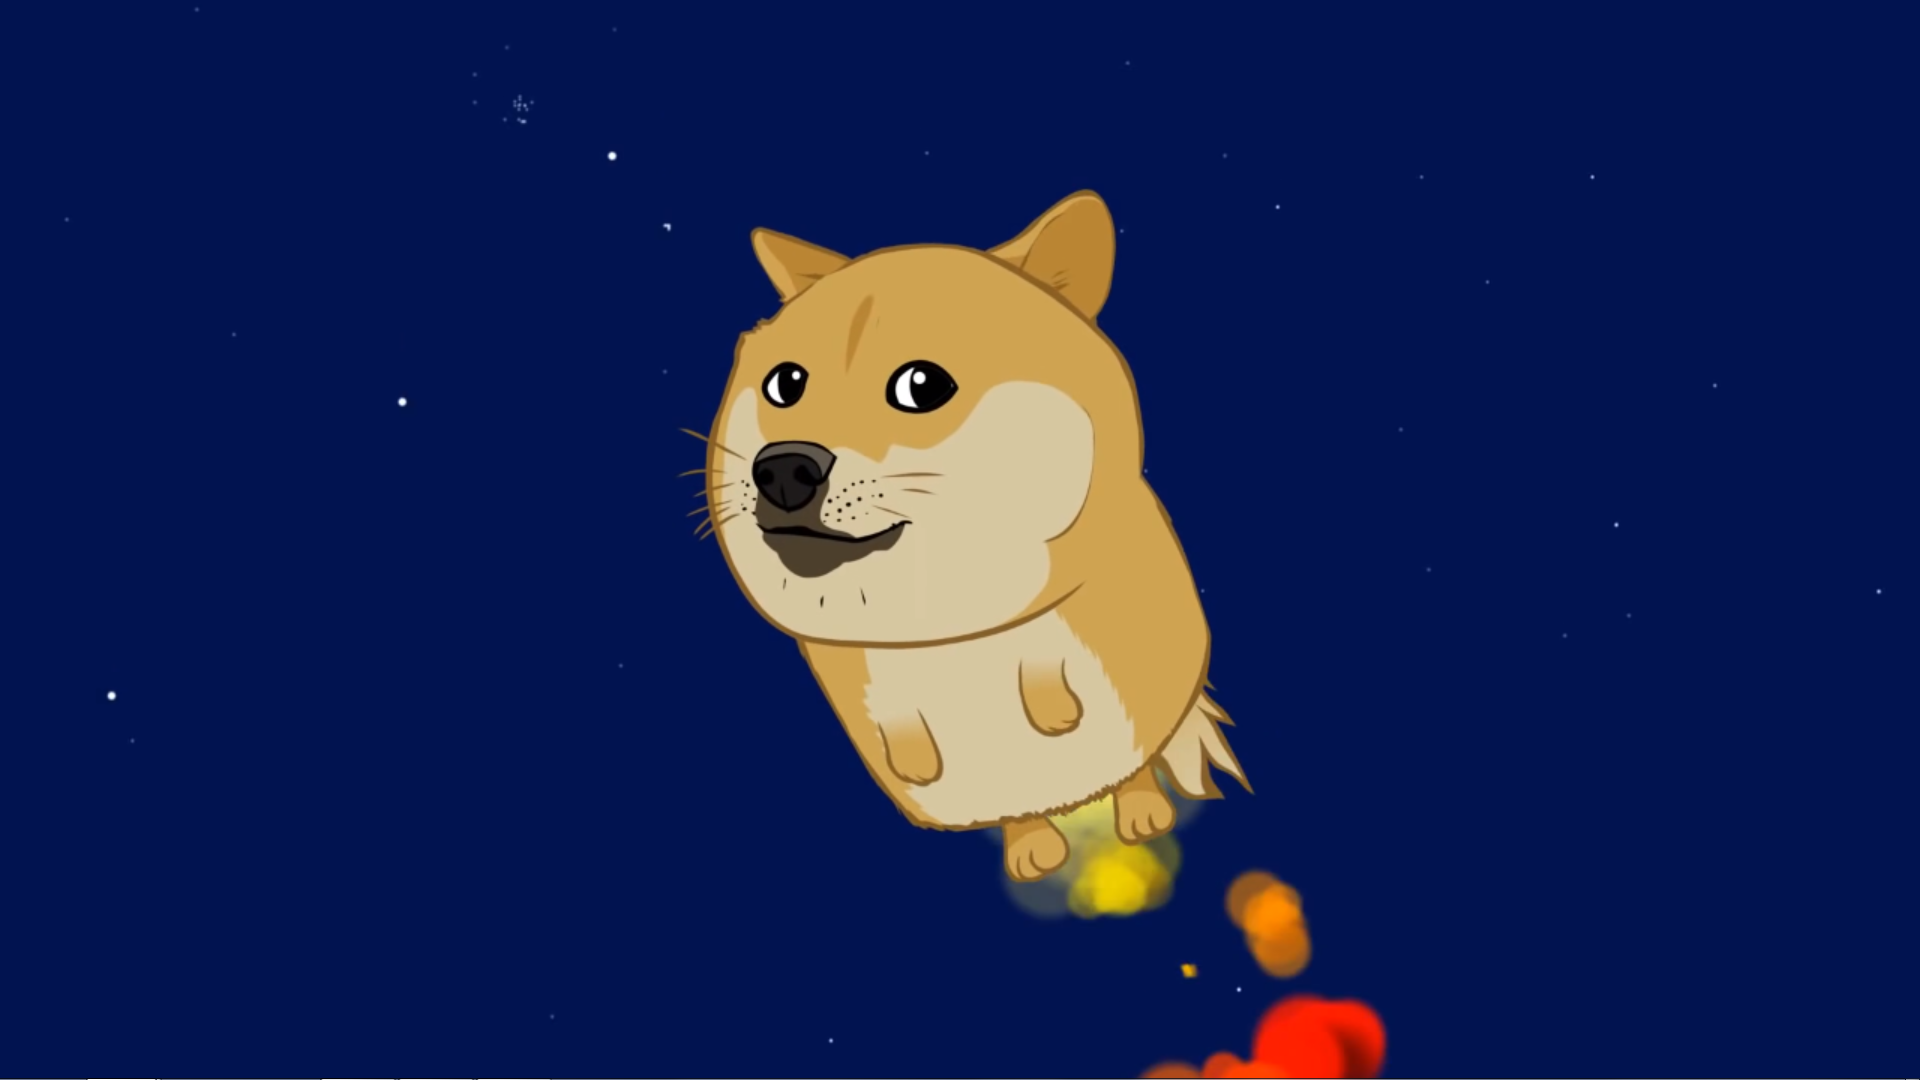 Doge Wallpaper 1920x1080 Images Pictures   Becuo 1920x1080